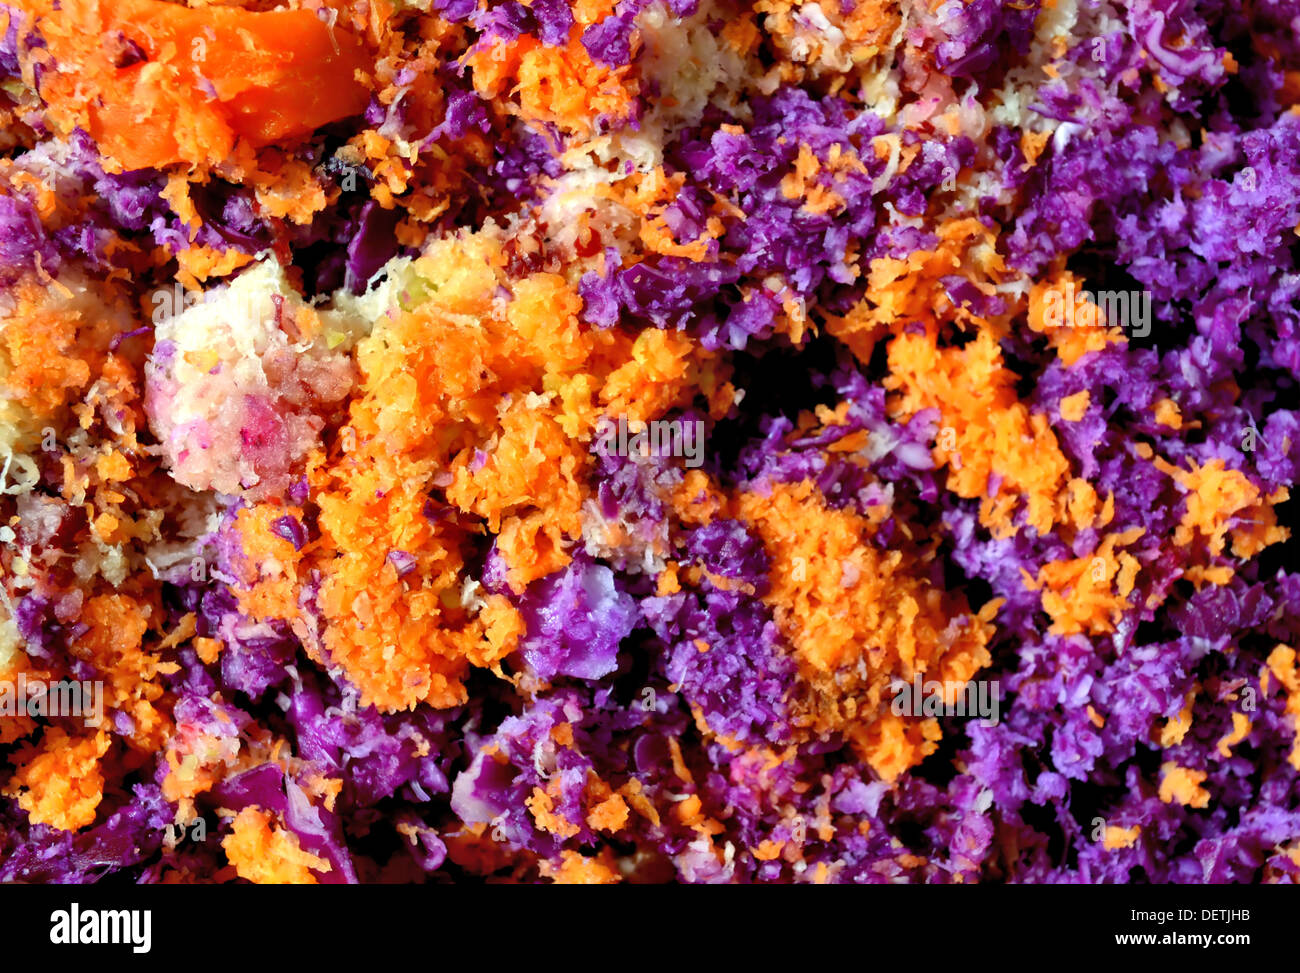 The beautiful colors and texture of such an ordinary, mundane thing as the remaining pulp of red cabbage, a lemon and carrots af - Stock Image